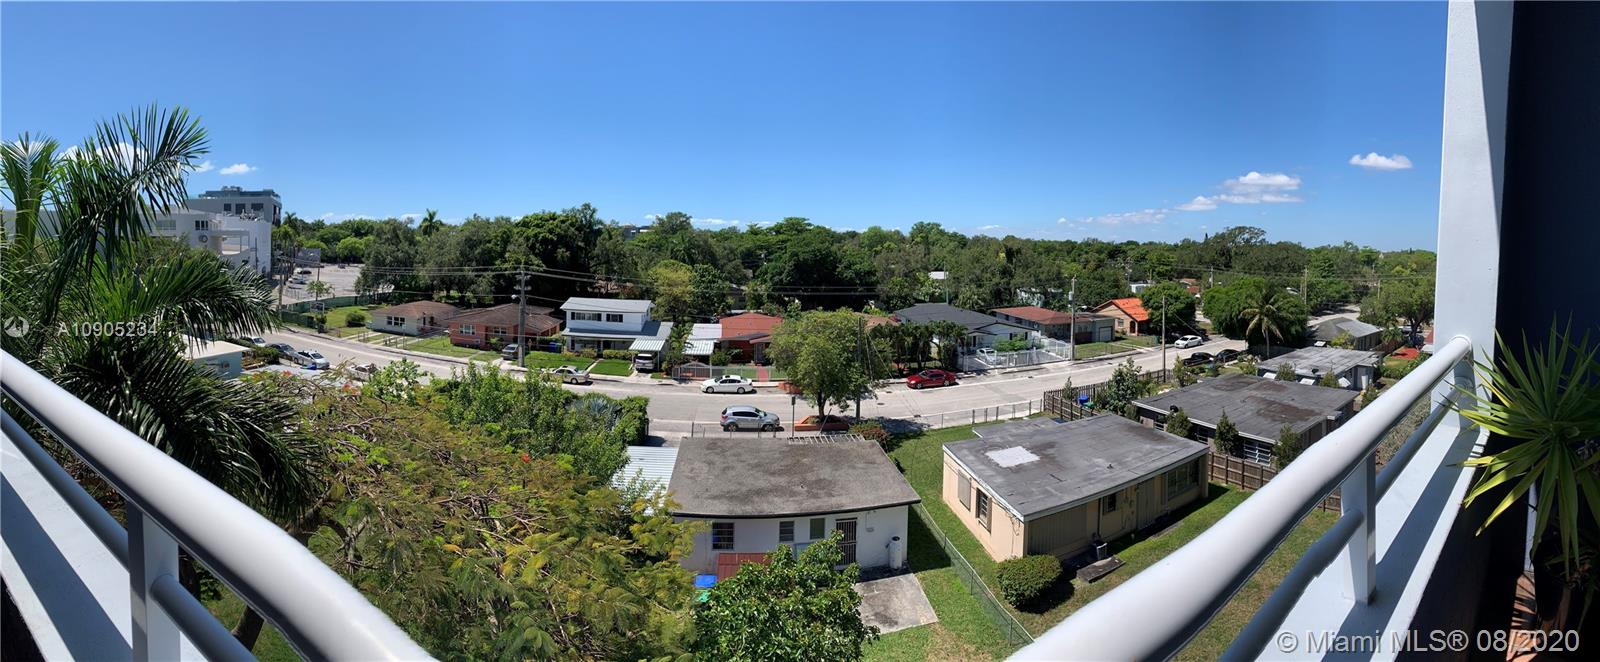 3250  Grand Ave #510 For Sale A10905234, FL